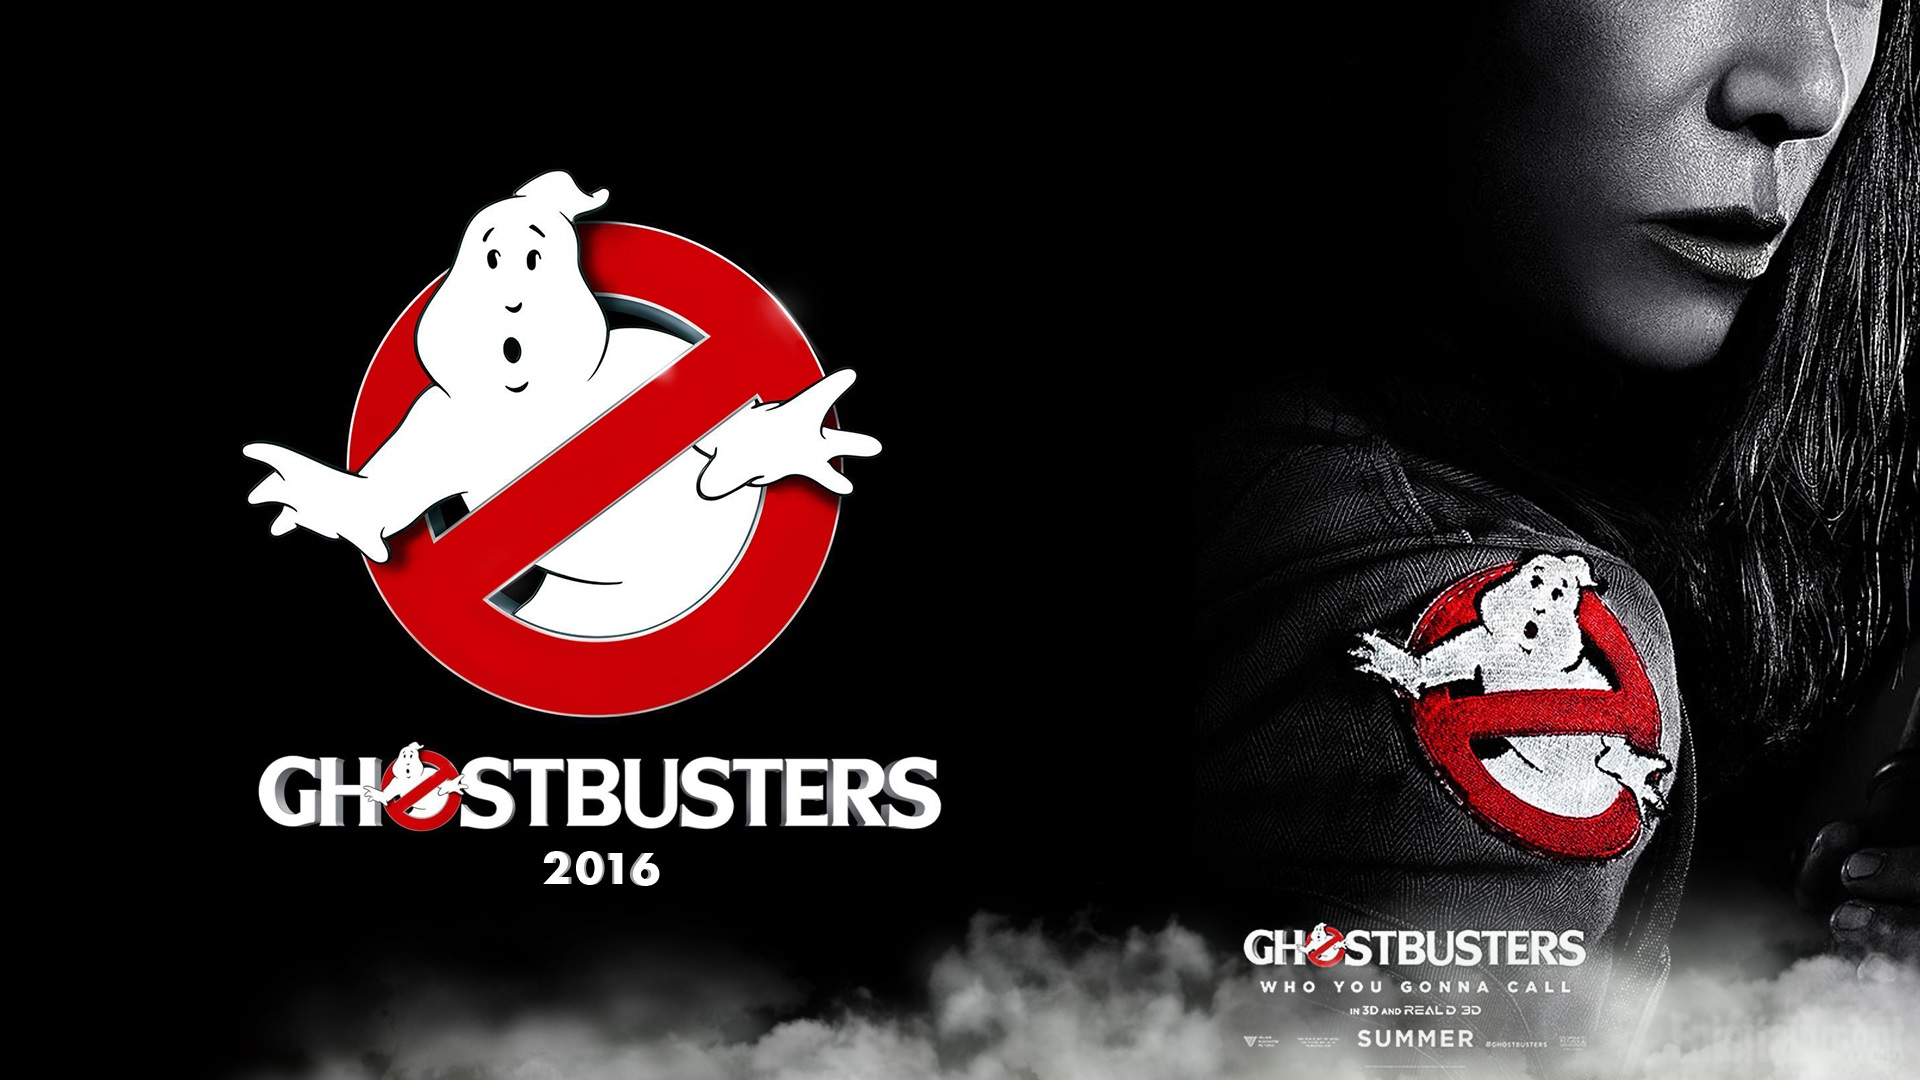 GHOSTBUSTERSCD0